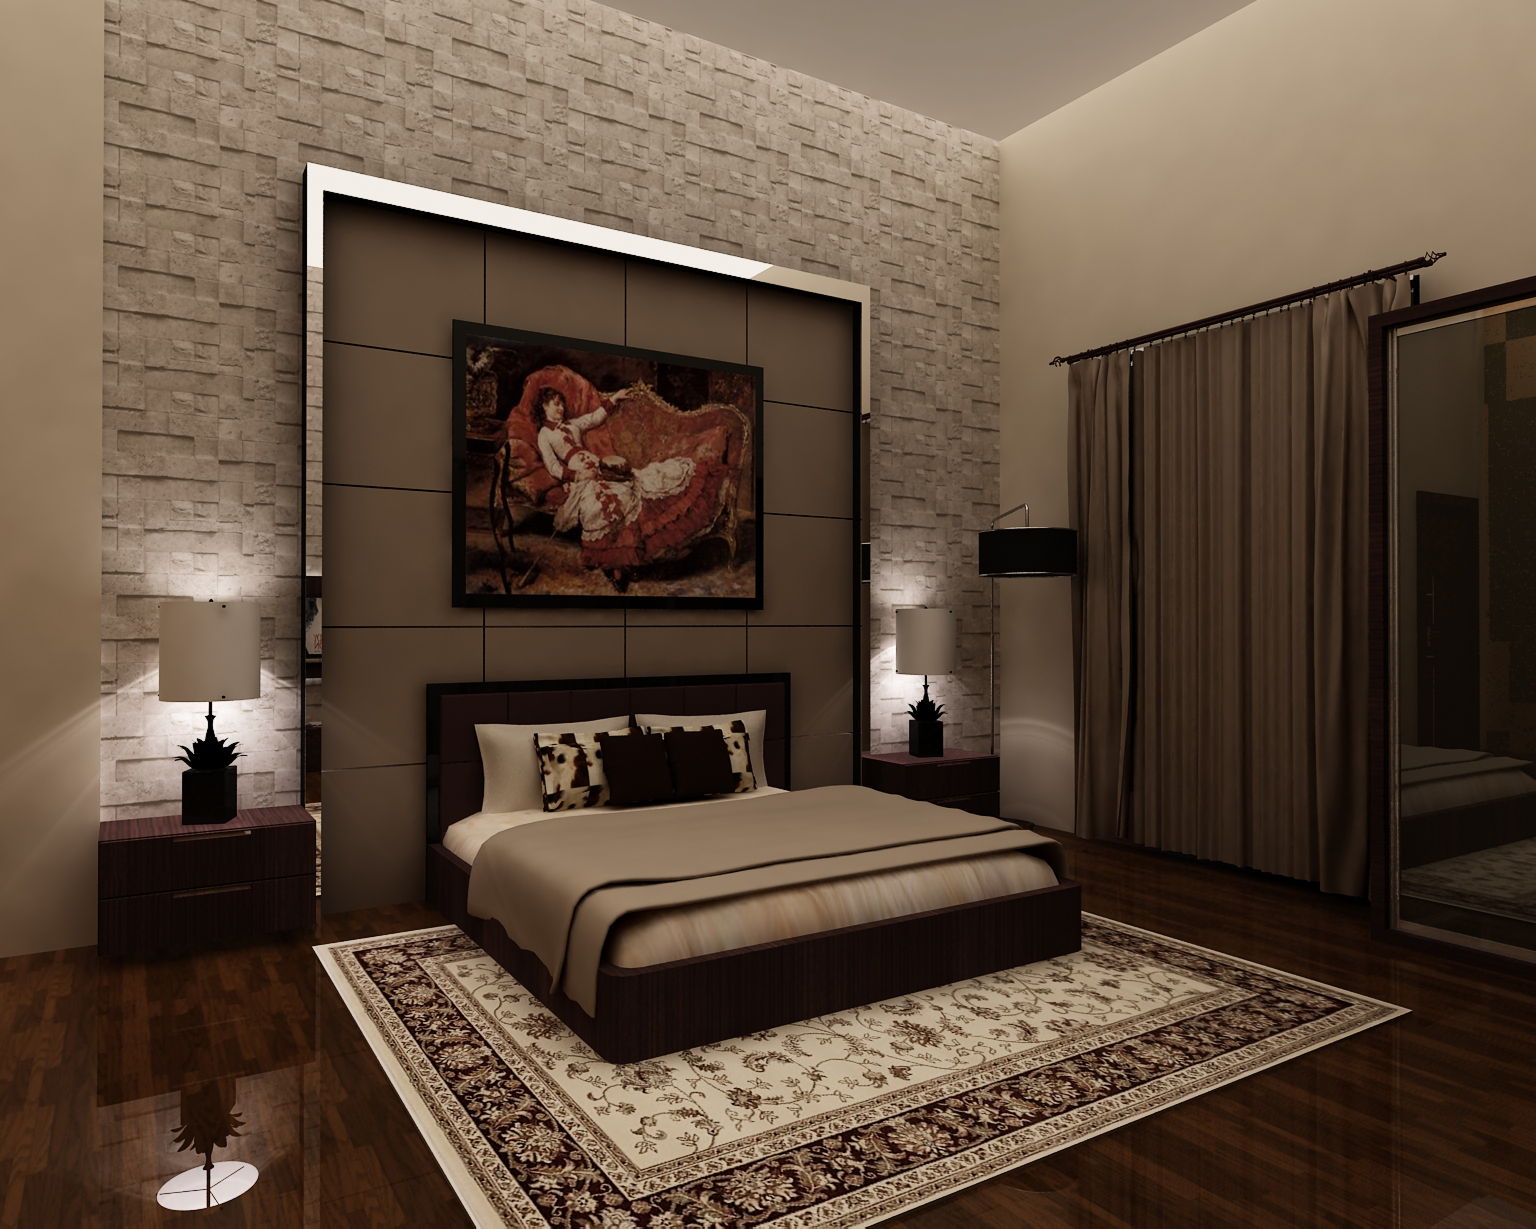 Semi classic adult bedroom by forevalonejackk on deviantart for Bedroom designs classic